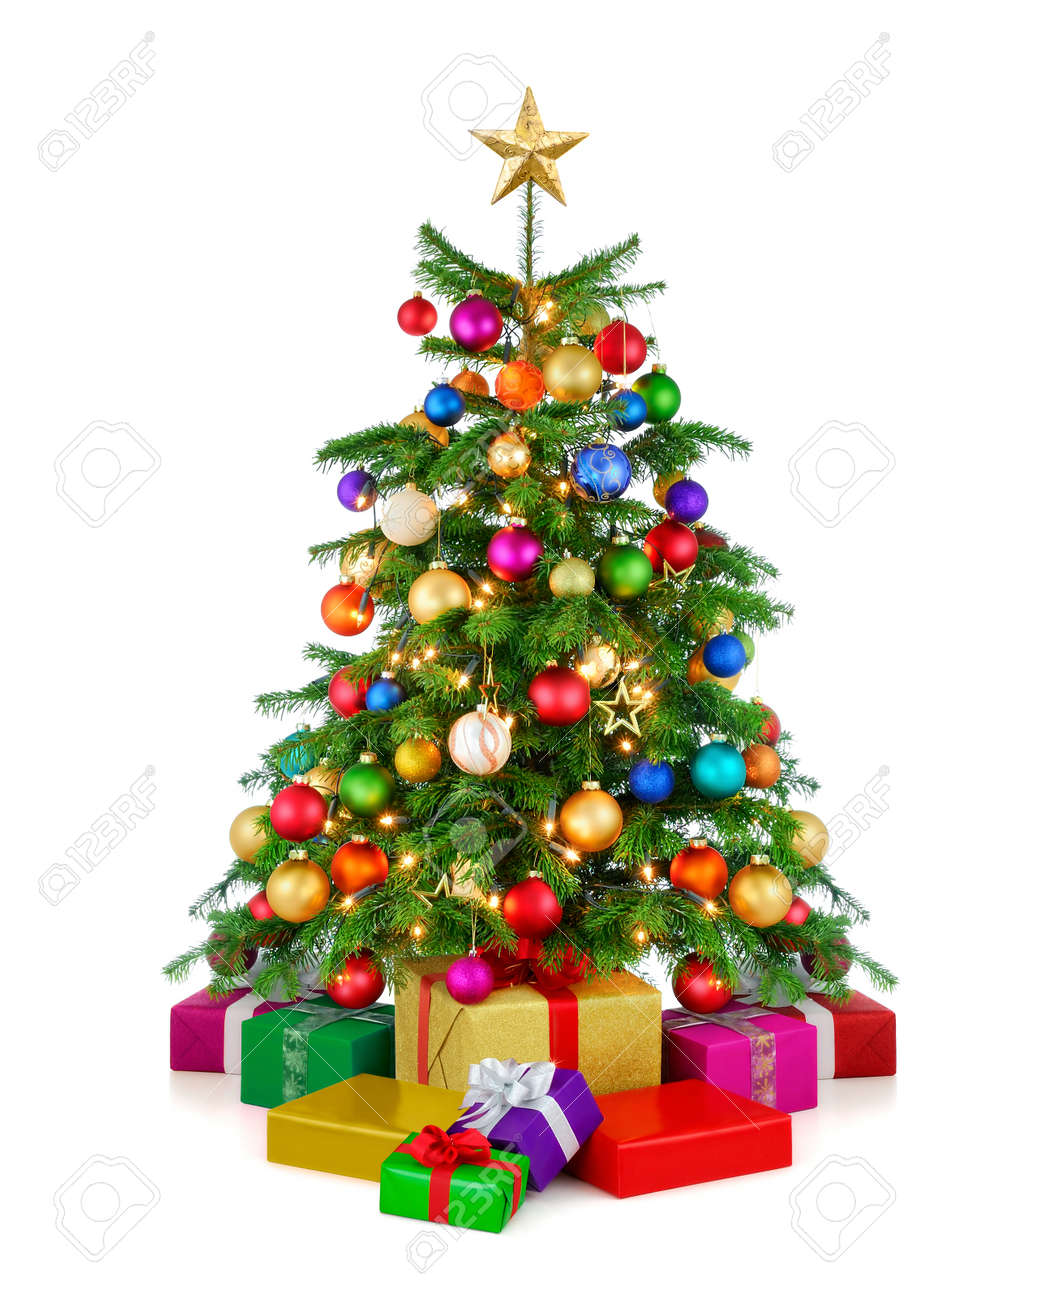 Joyful Studio Shot Of A Colorful Lush Christmas Tree Shining.. Stock ...